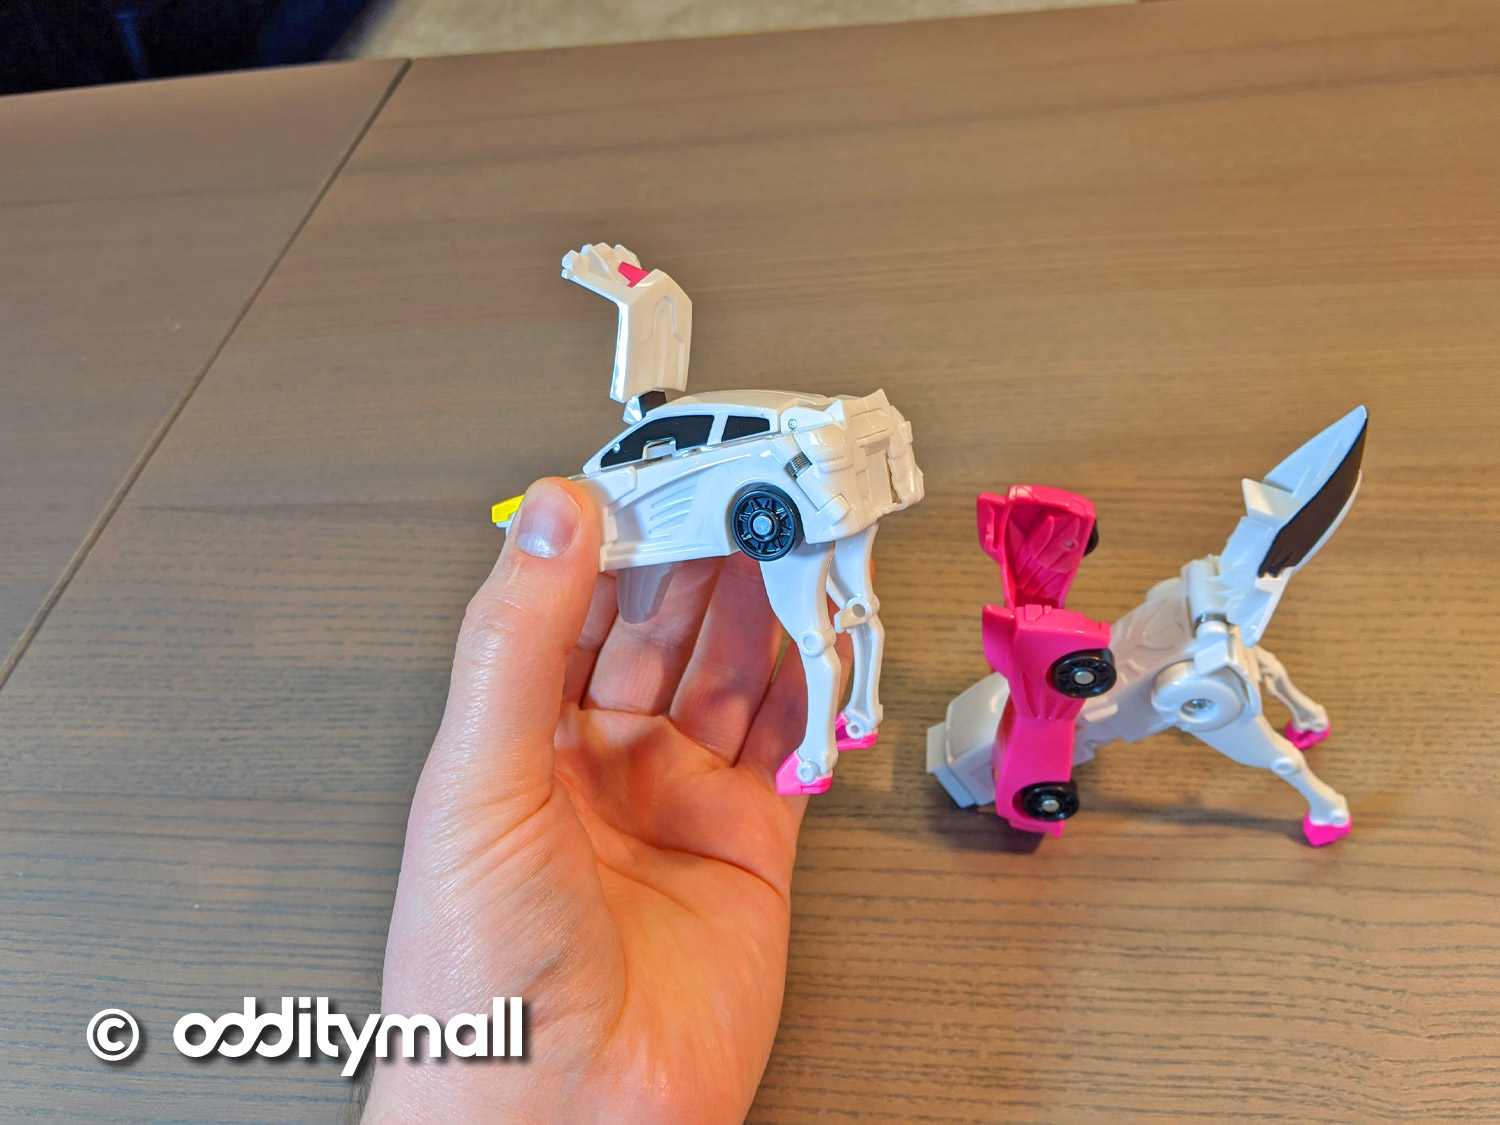 CarBot Magnetic Cars That Transform Into a Unicorn - Magnetic transforming toy